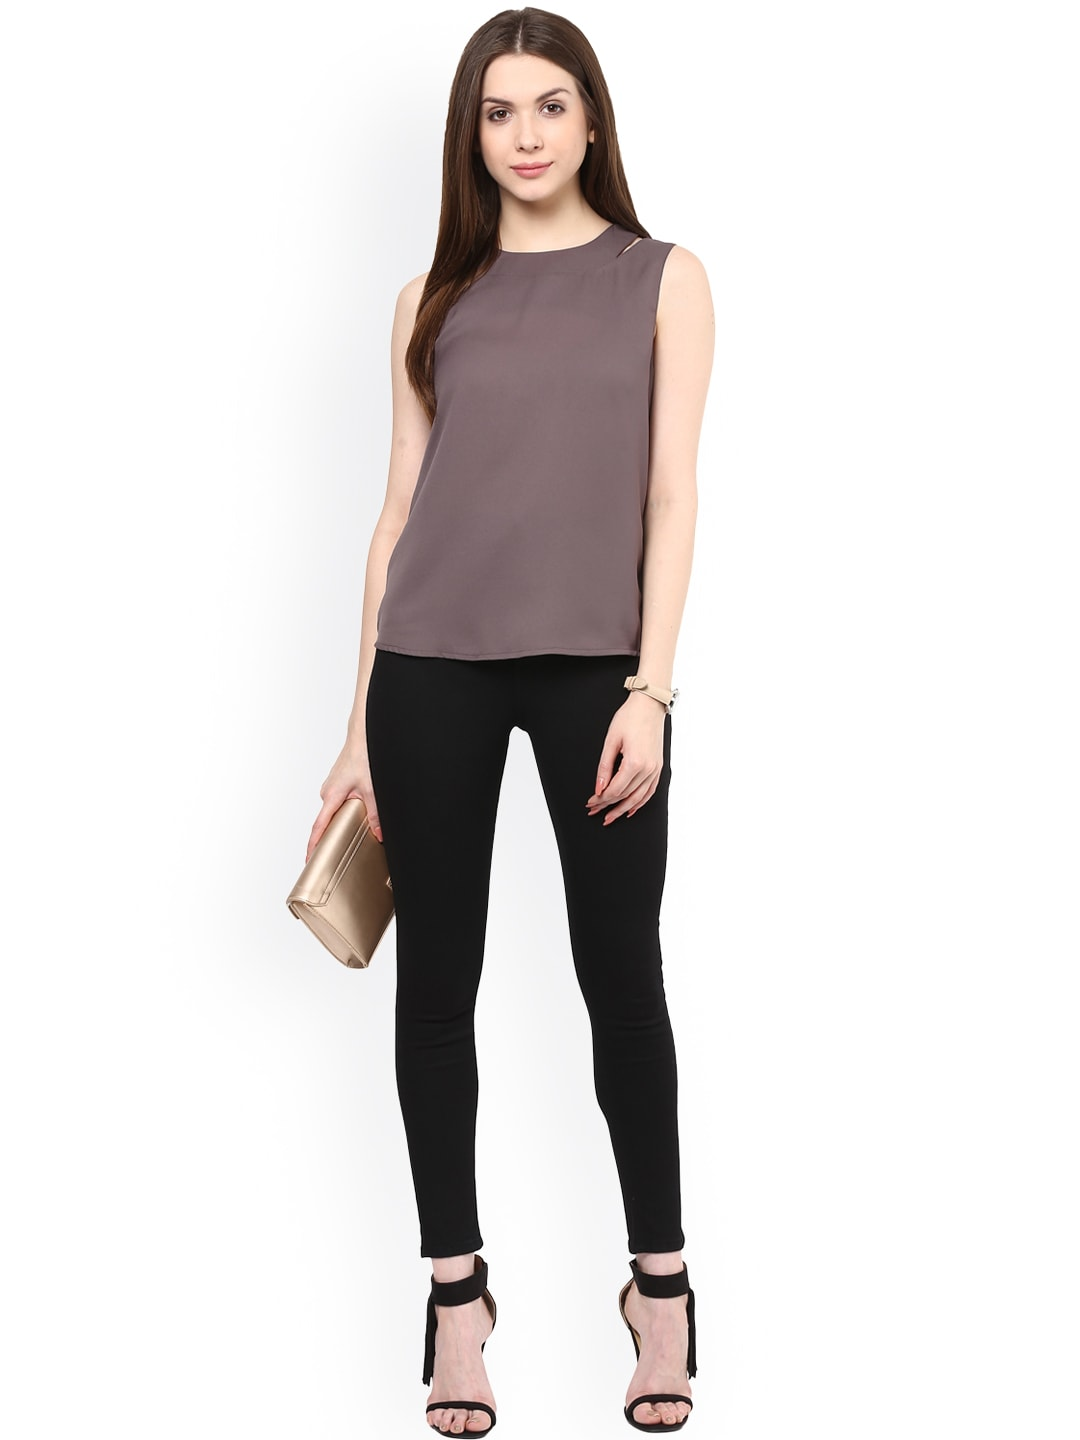 Find great deals on eBay for girls tops and leggings. Shop with confidence.